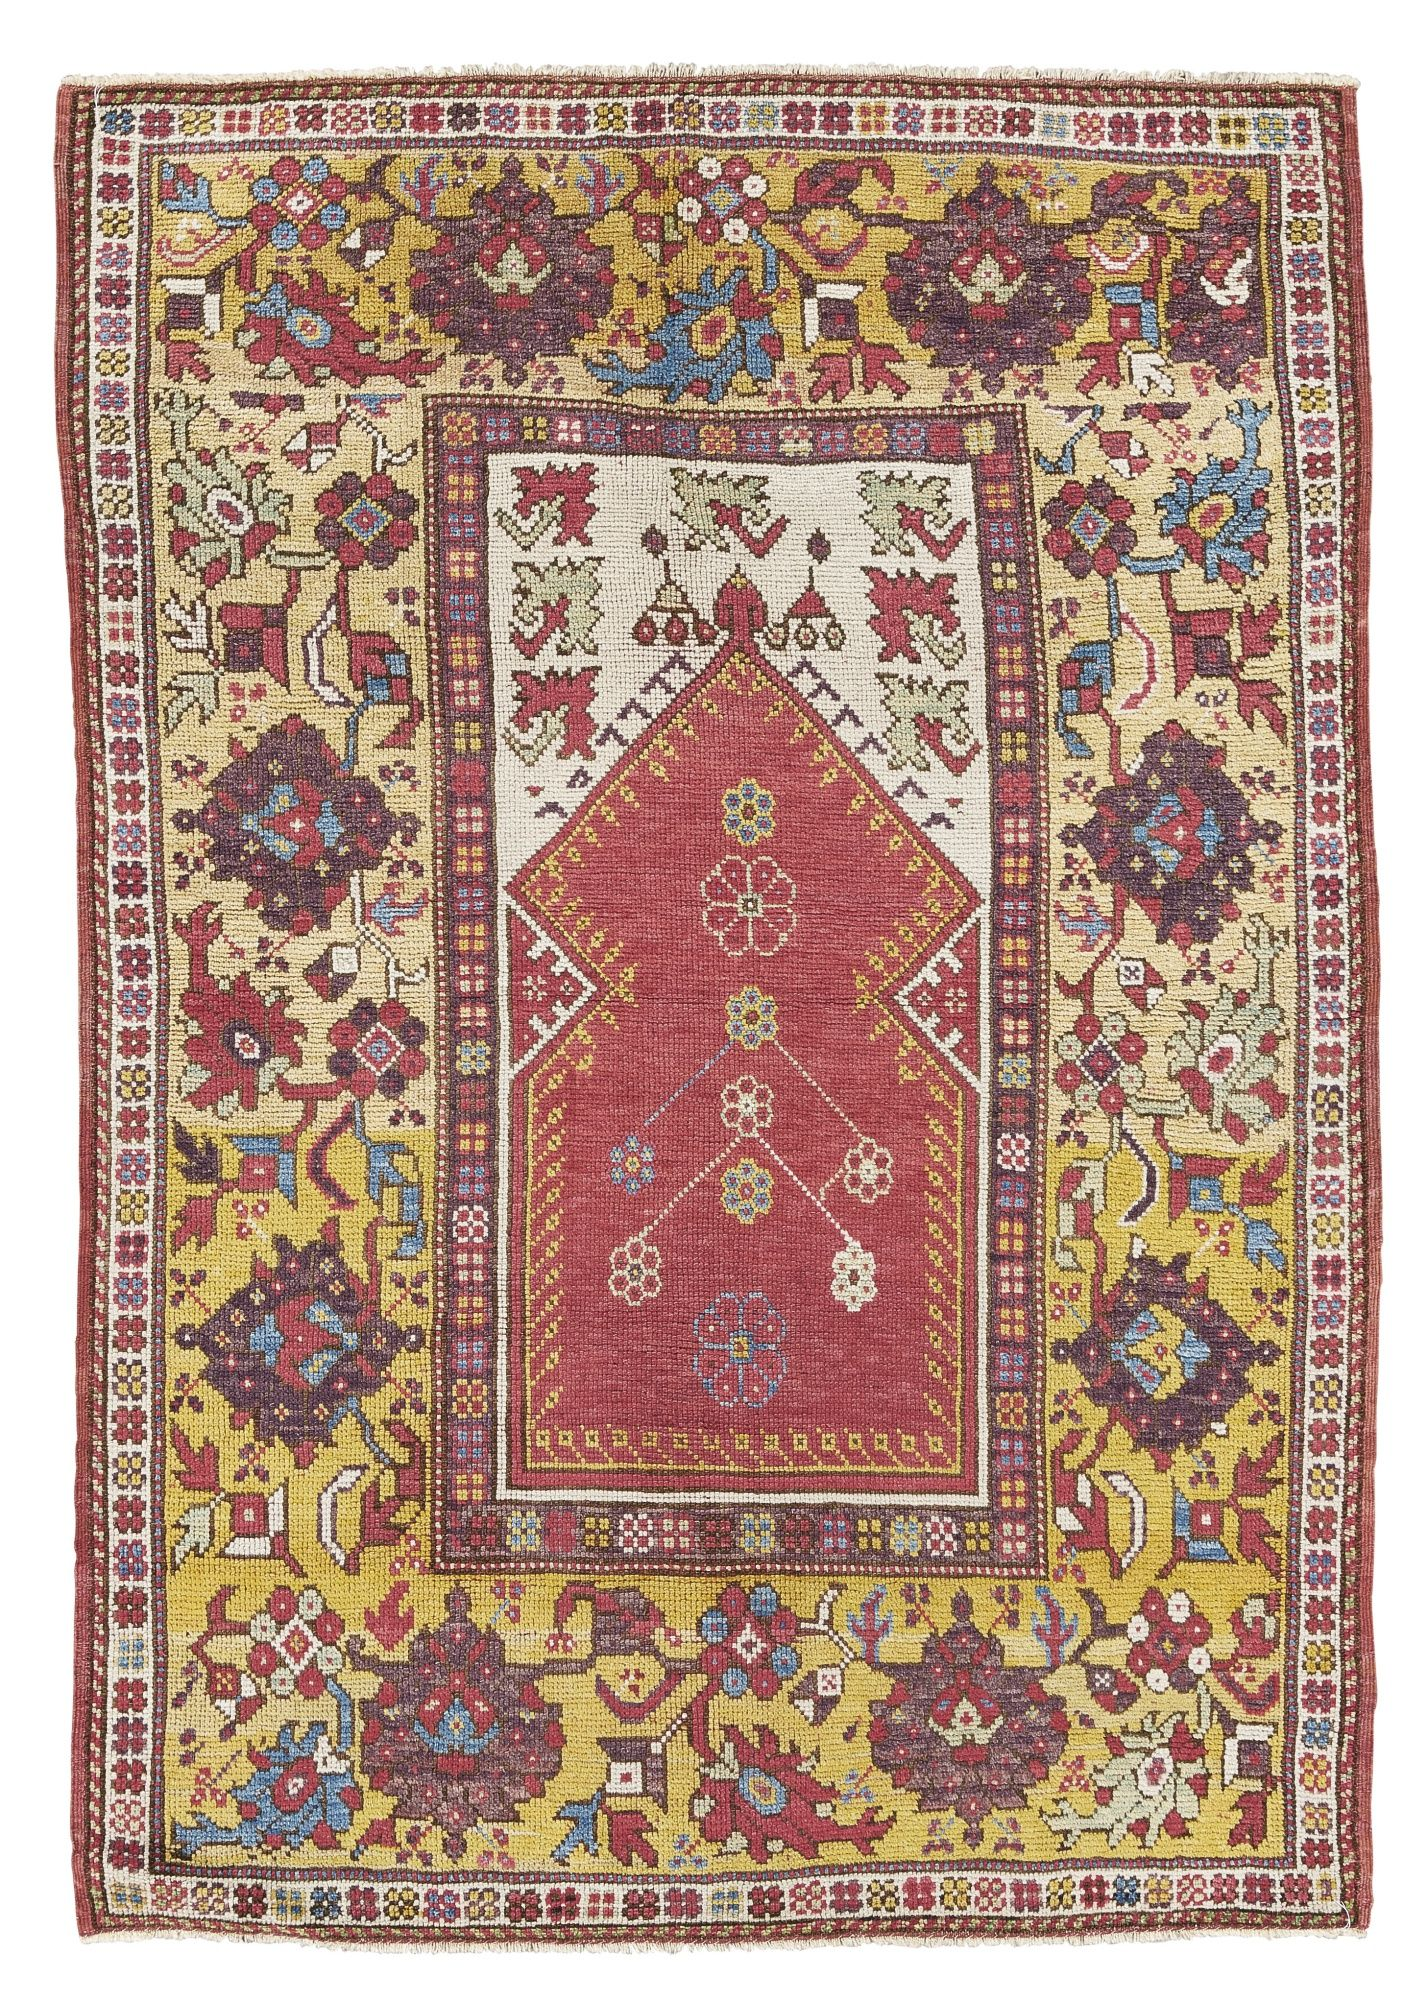 Melas Prayer Rug Southwest Anatolia Approximately 145 By 102cm 4ft 9in 3ft 4in Circa 1800 Tappeti